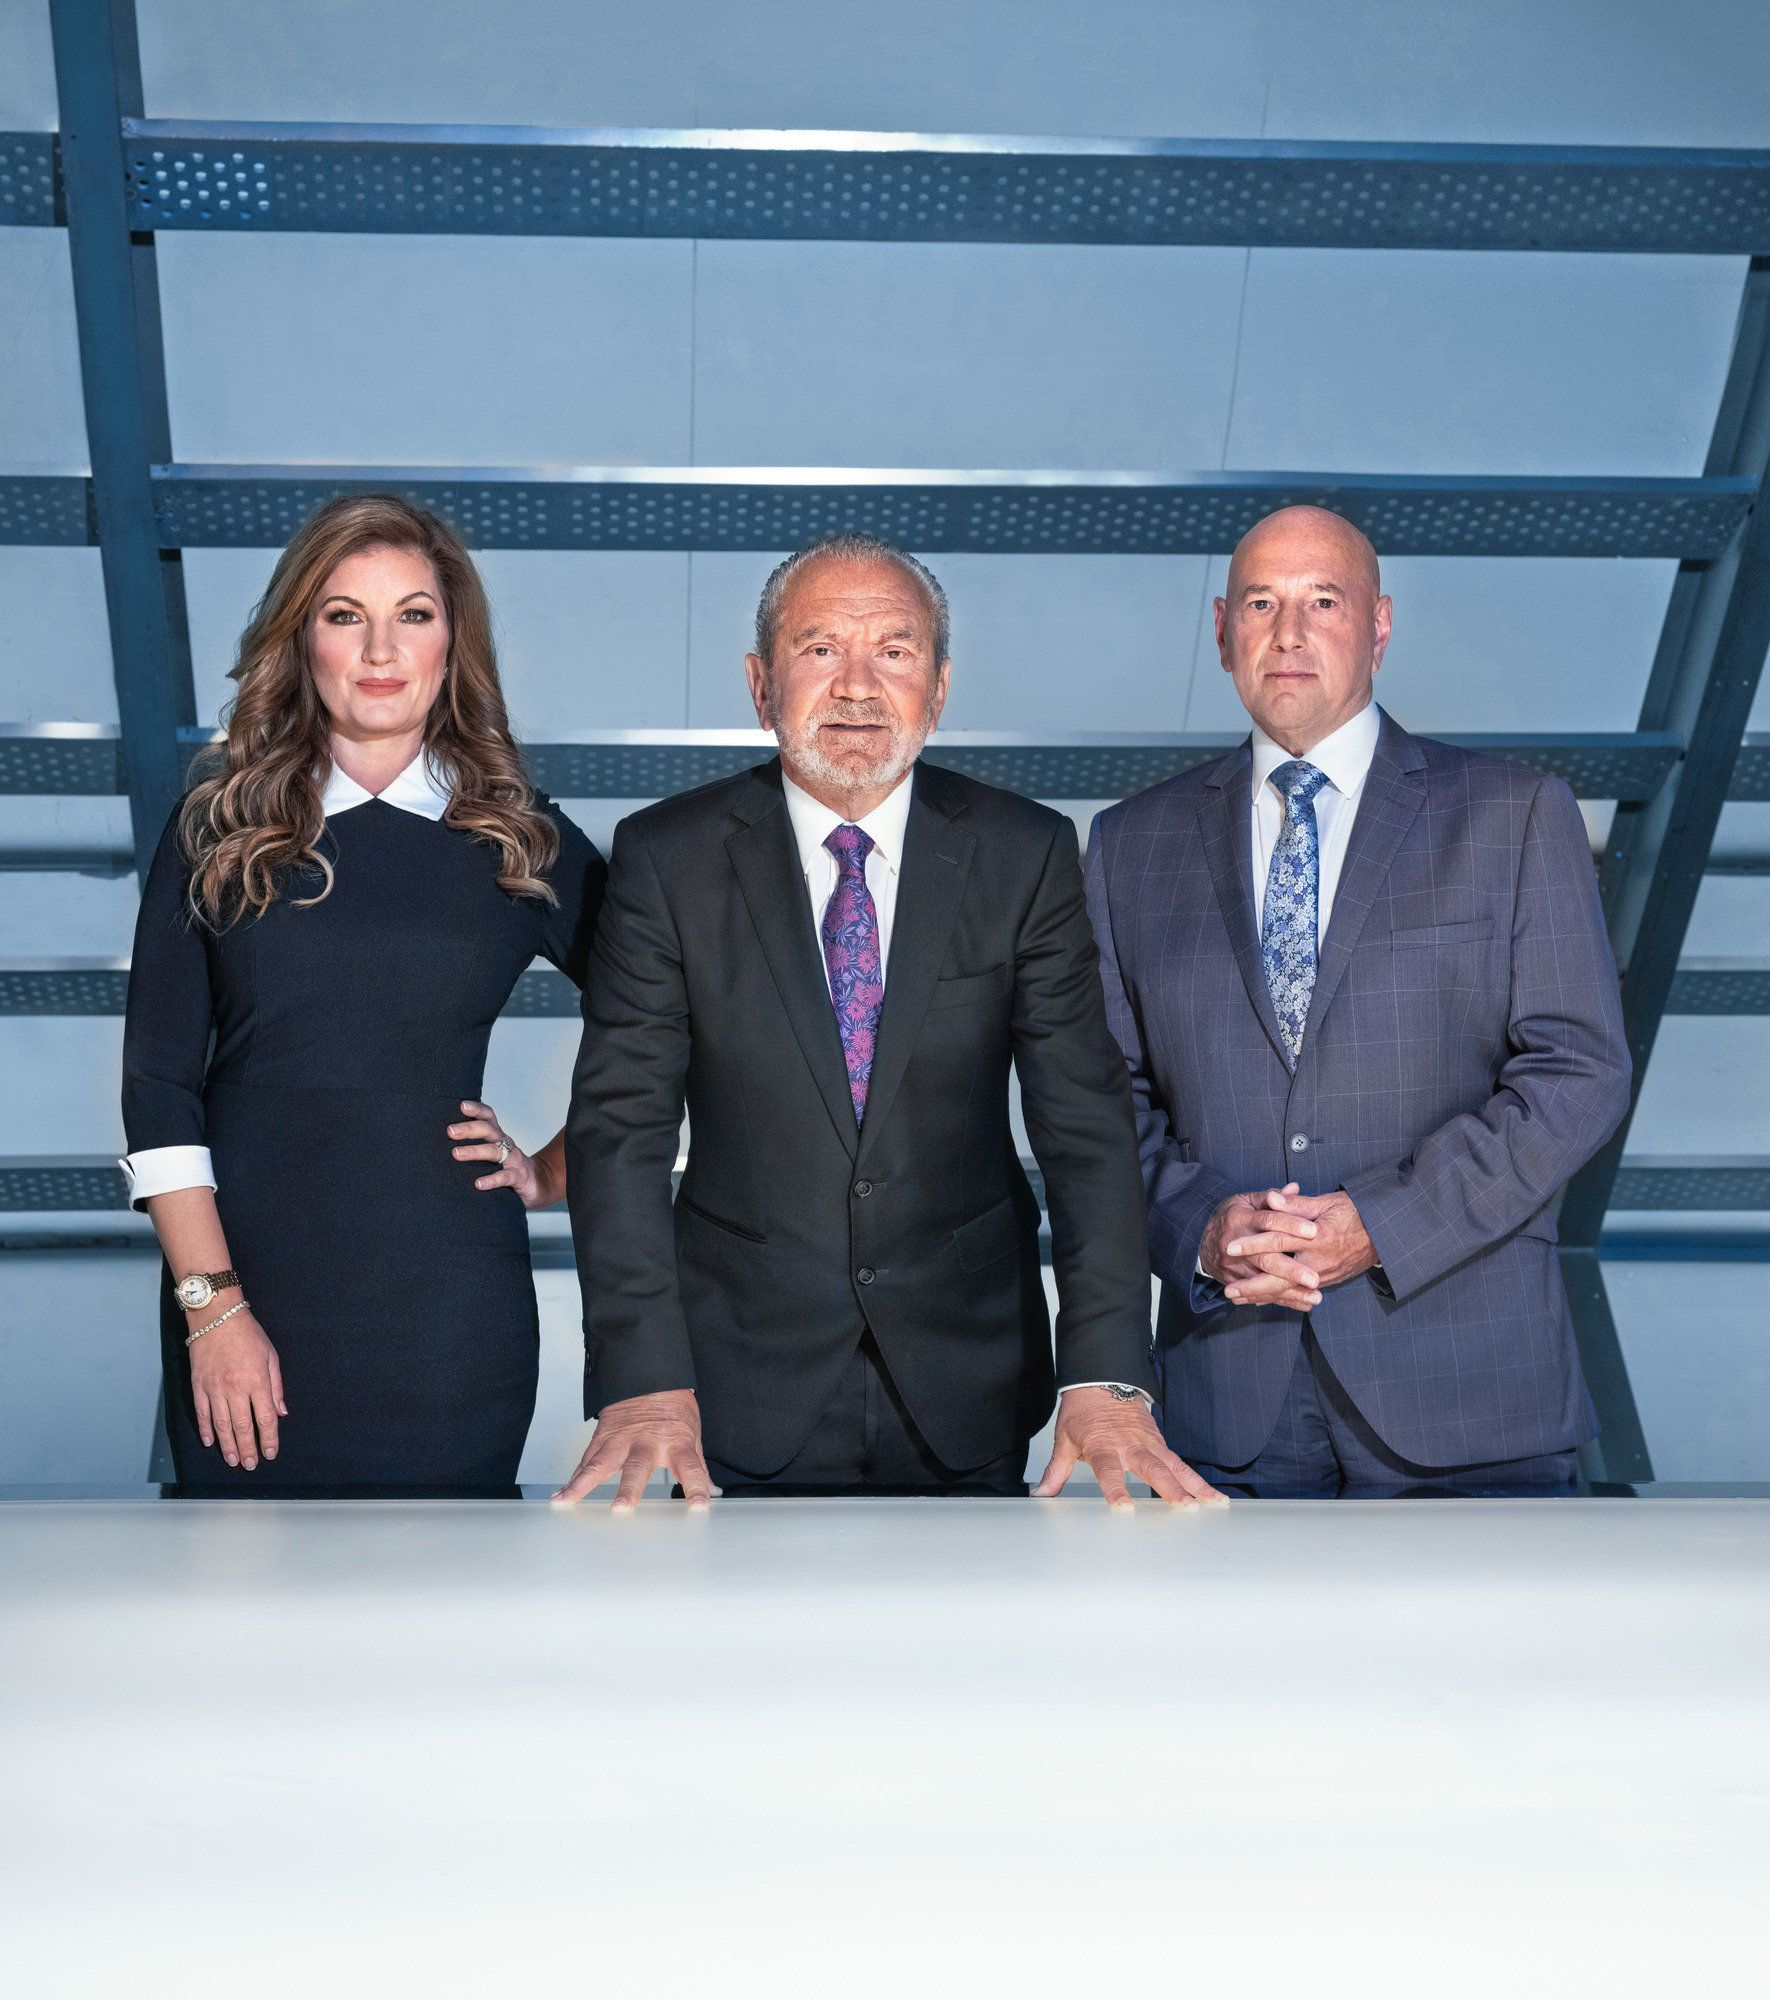 Lord Sugar And His Advisors Defend Contestants' Mistakes On 'The Apprentice'